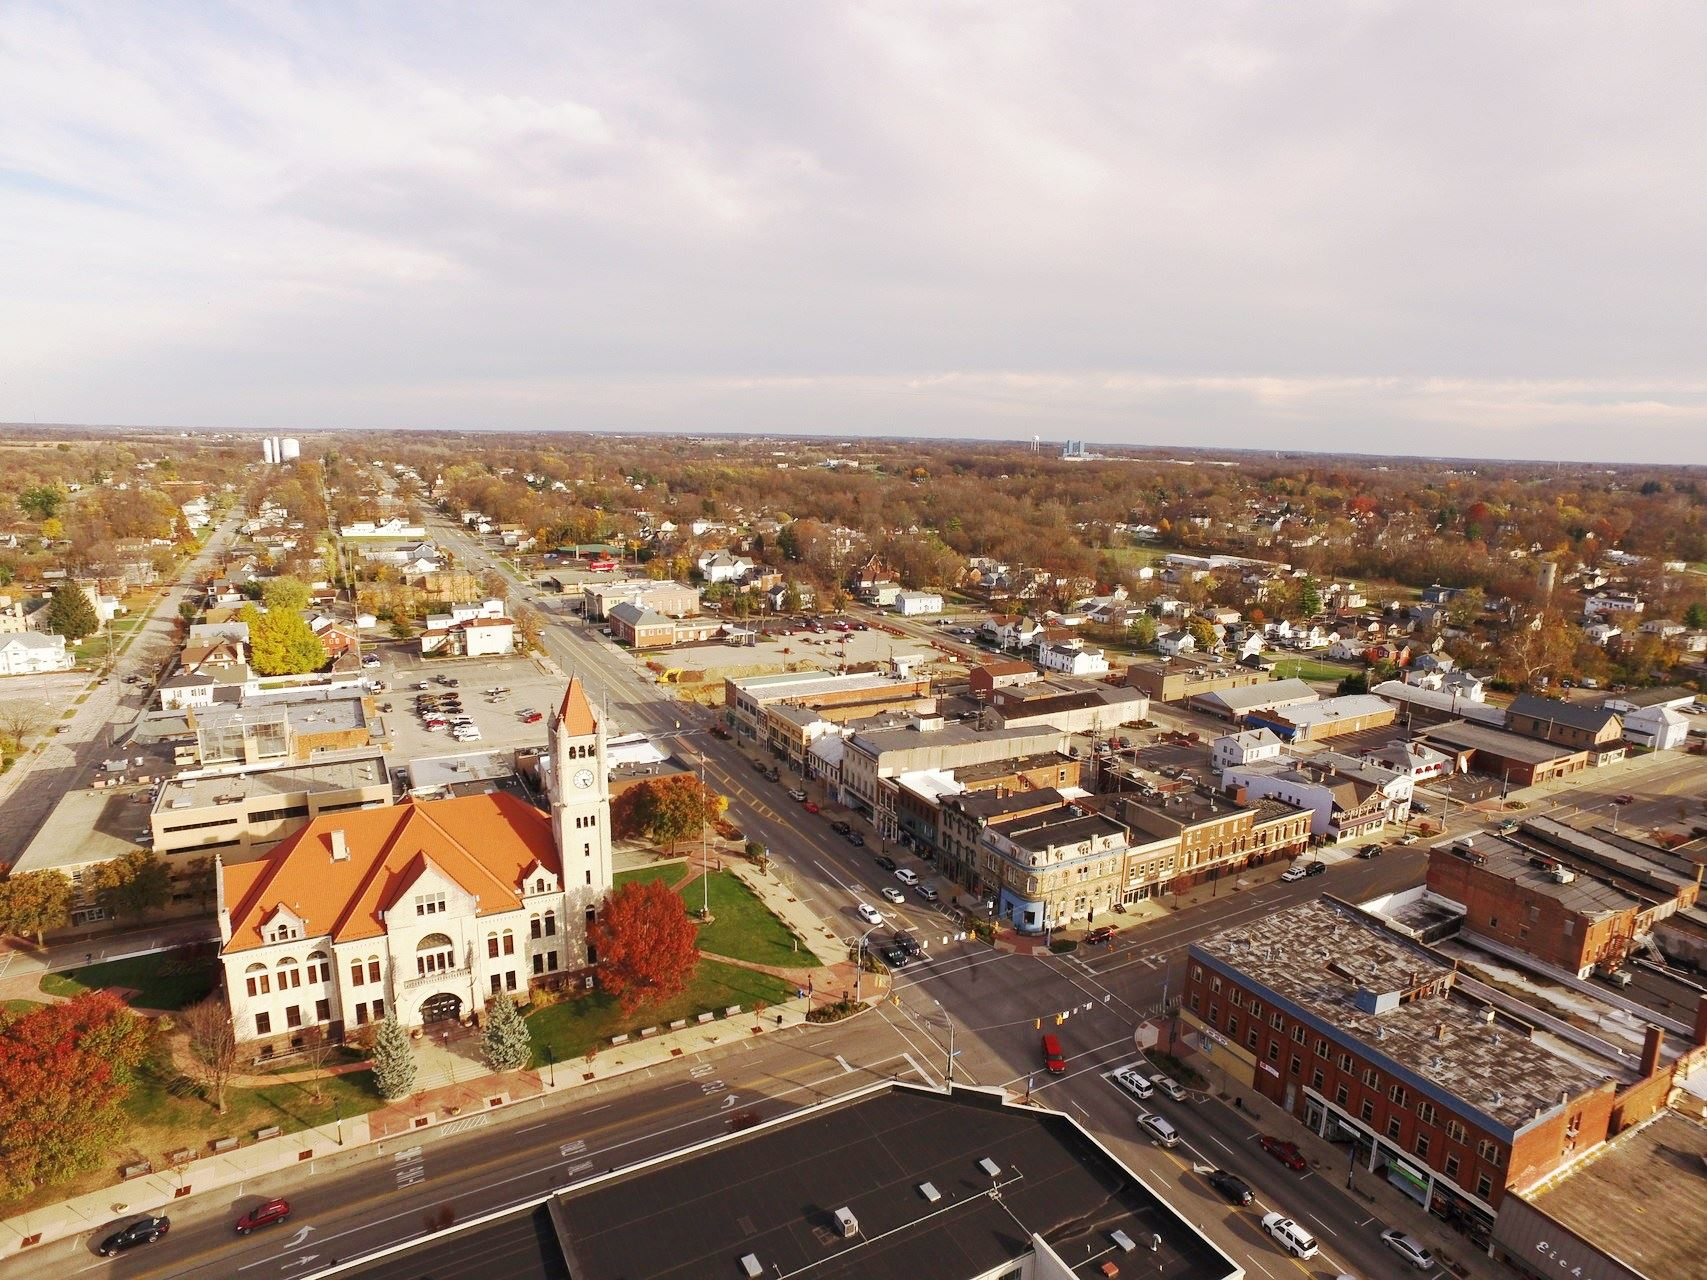 Sky View of Downtown Xenia